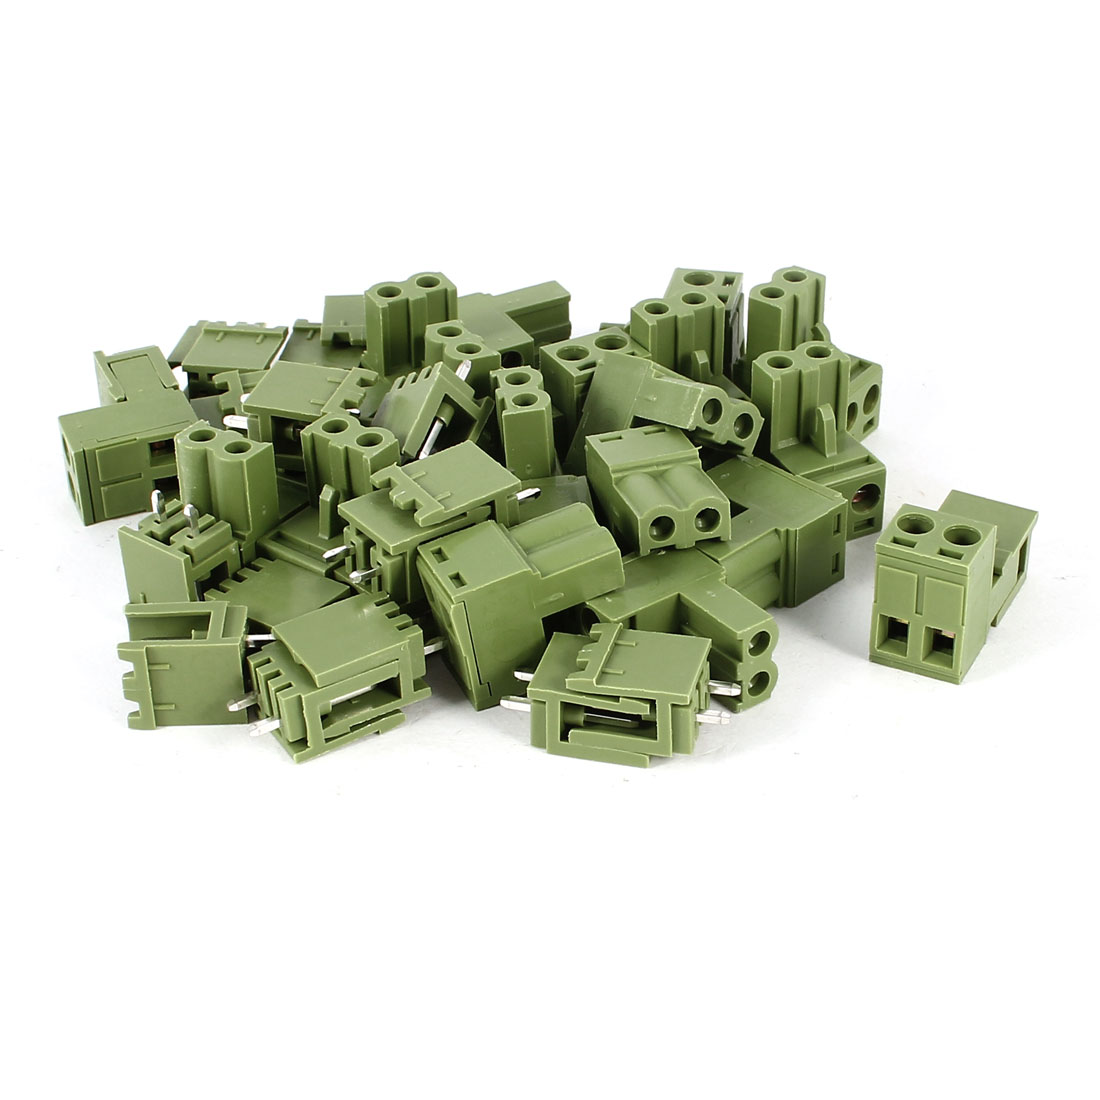 20 Pcs 2Pin 5.08mm Spacing PCB Screw Terminal Block Connector 300V 10A AWG12-24